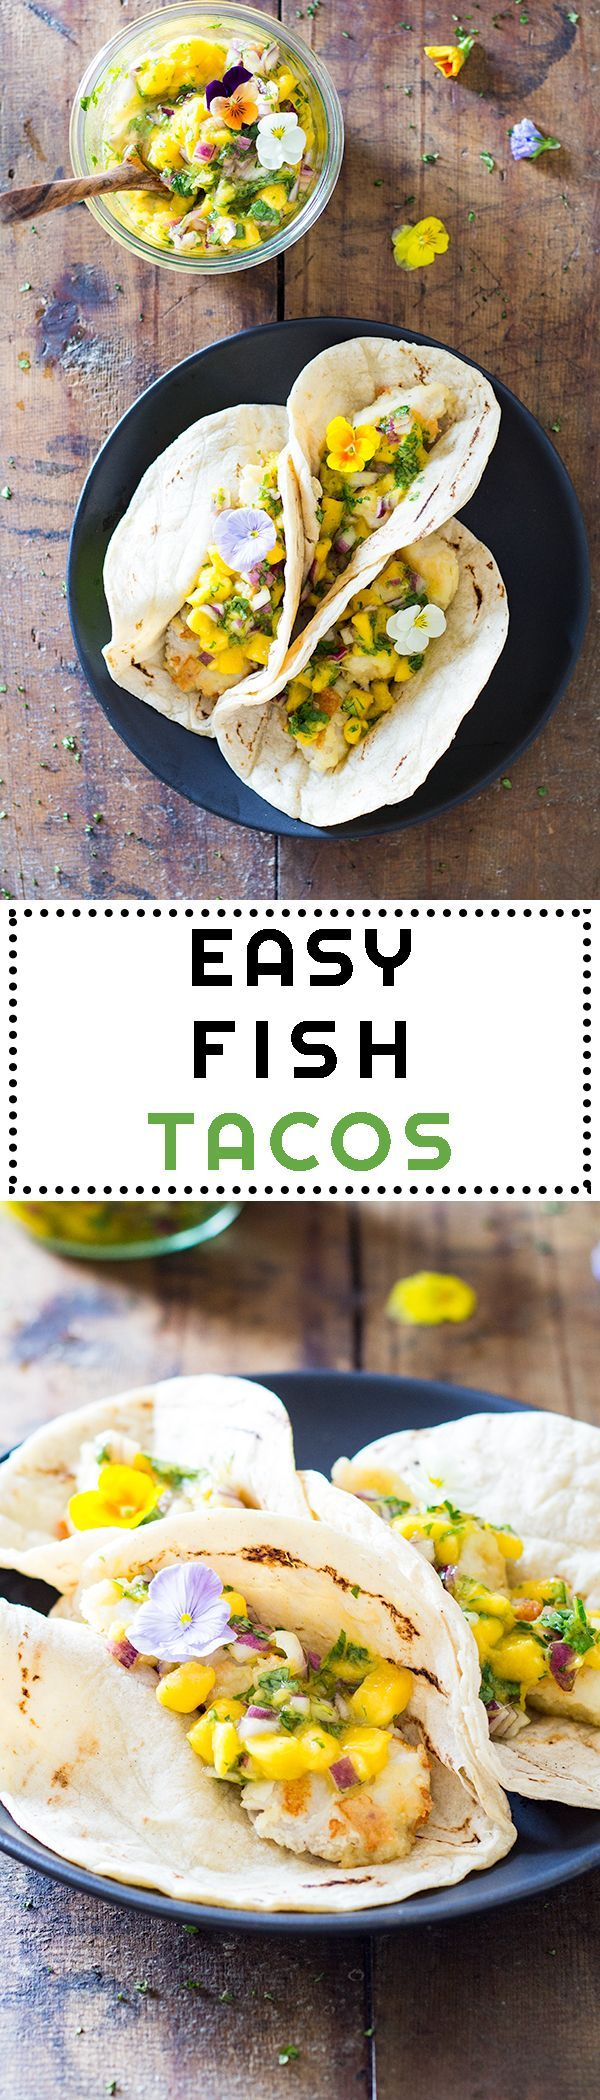 Easy fish tacos recipe the o 39 jays 21 days and to lose for Easy fish tacos recipe